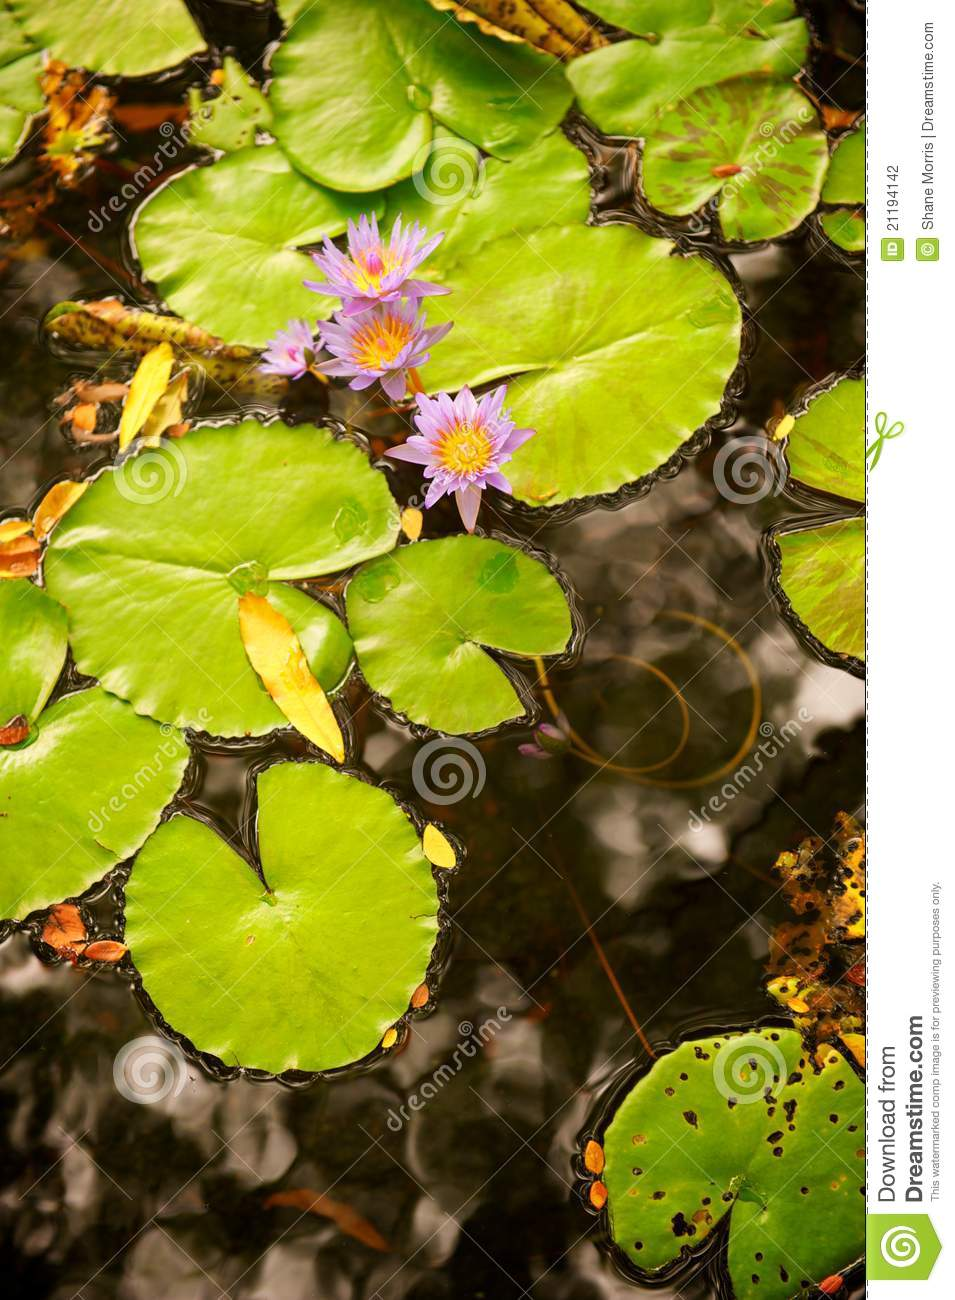 Lilly Pads and Flower in Pond